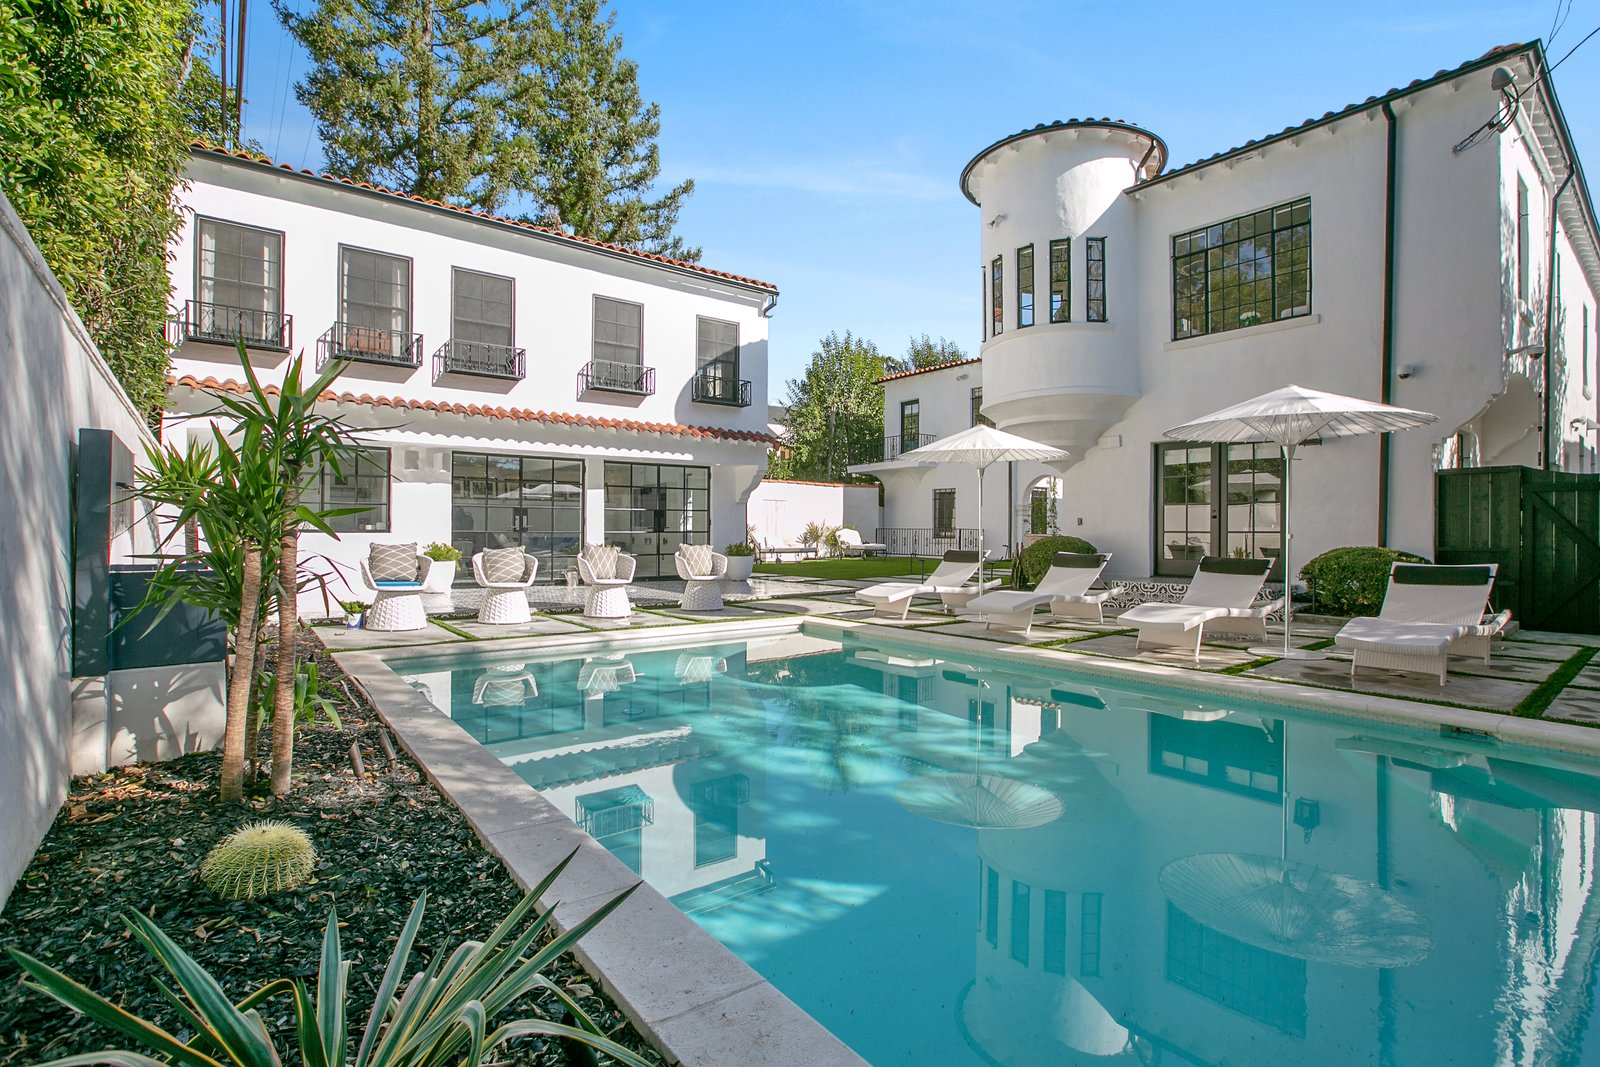 Outdoor, Trees, Concrete Fences, Wall, Pavers Patio, Porch, Deck, Shrubs, Back Yard, Raised Planters, and Large Pools, Tubs, Shower Near the pool is a detached guesthouse, which features a kitchen, dining area, and living room.  Photo 3 of 14 in Beck's Former Mediterranean-Style Retreat Lists For $8M